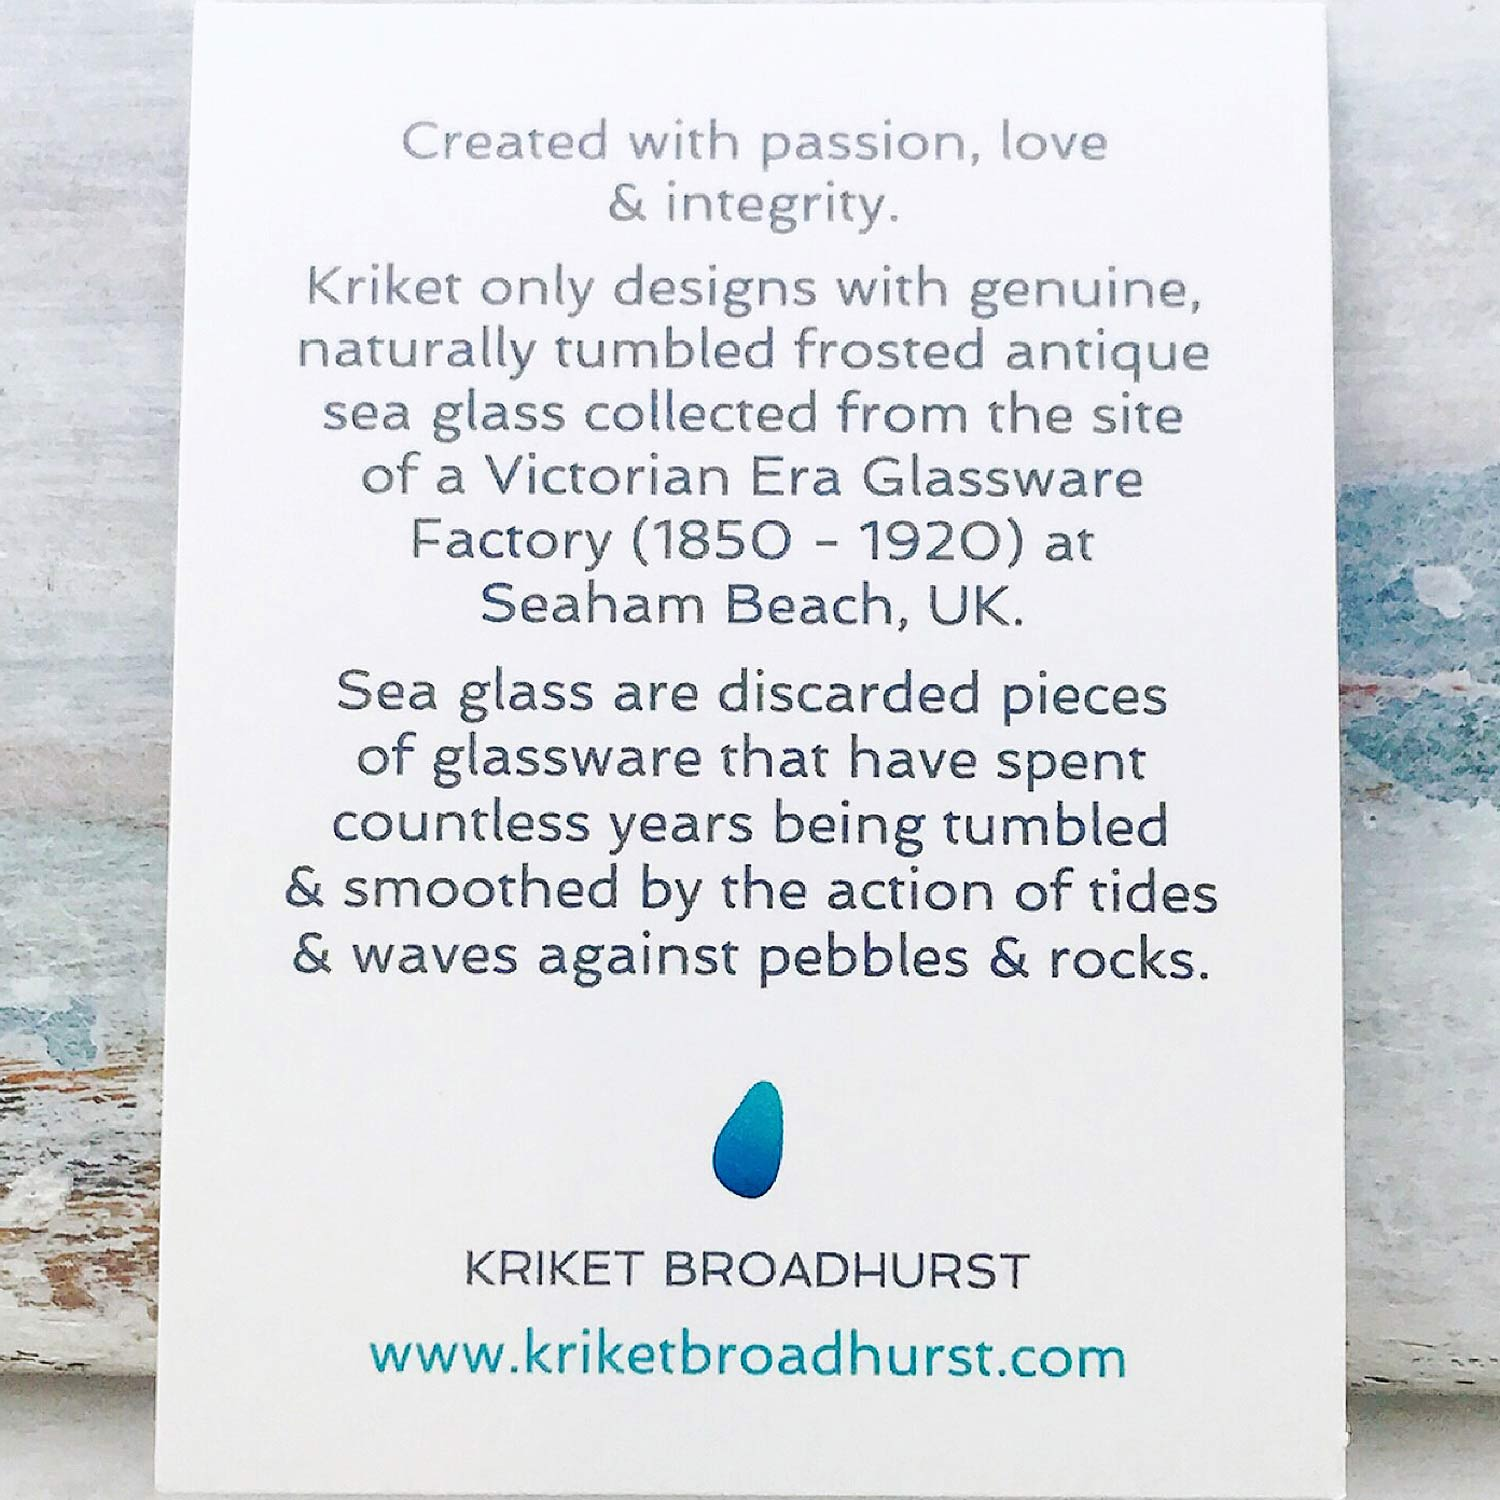 kriket-broadhurst seaglass jewellery information card